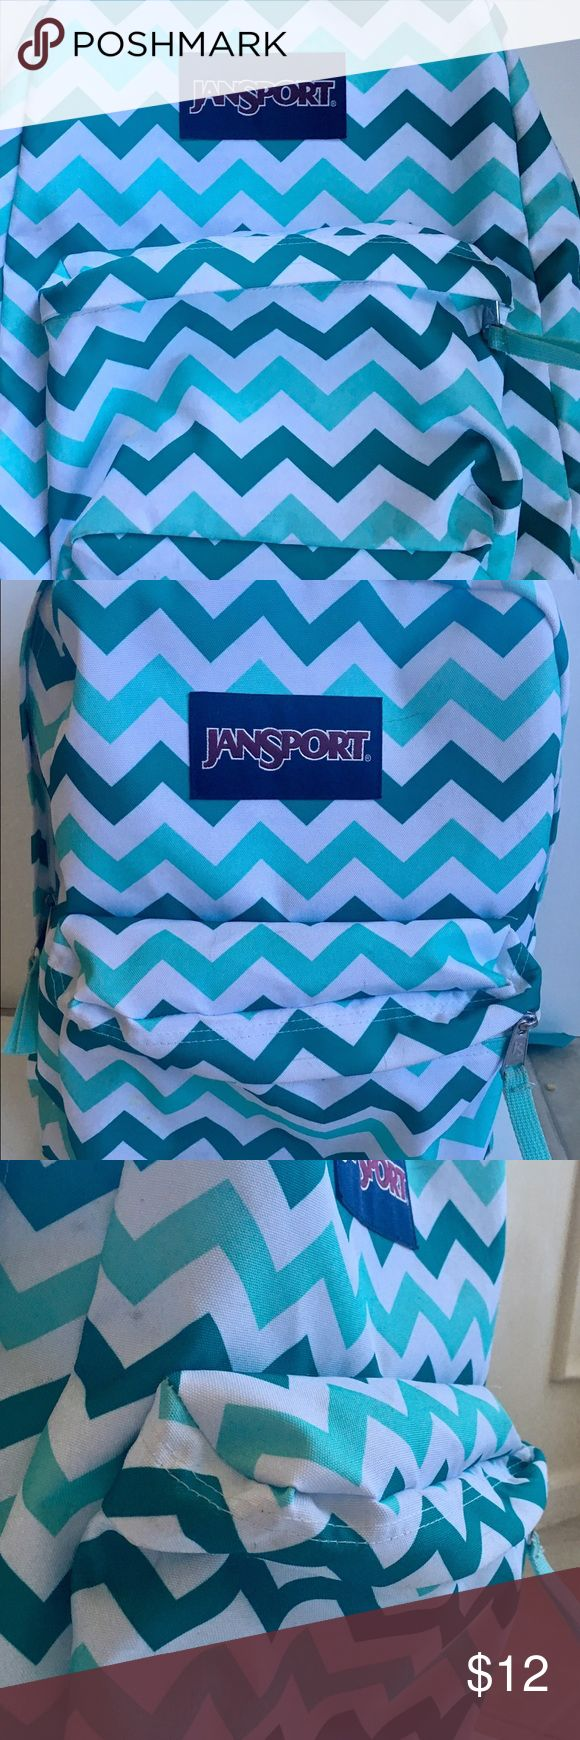 JANSPORT backpack Green chevron backpack by JANSPORT. Outside zippered pocket. Used but Great condition. Some stray pen marks. Jansport Bags Backpacks